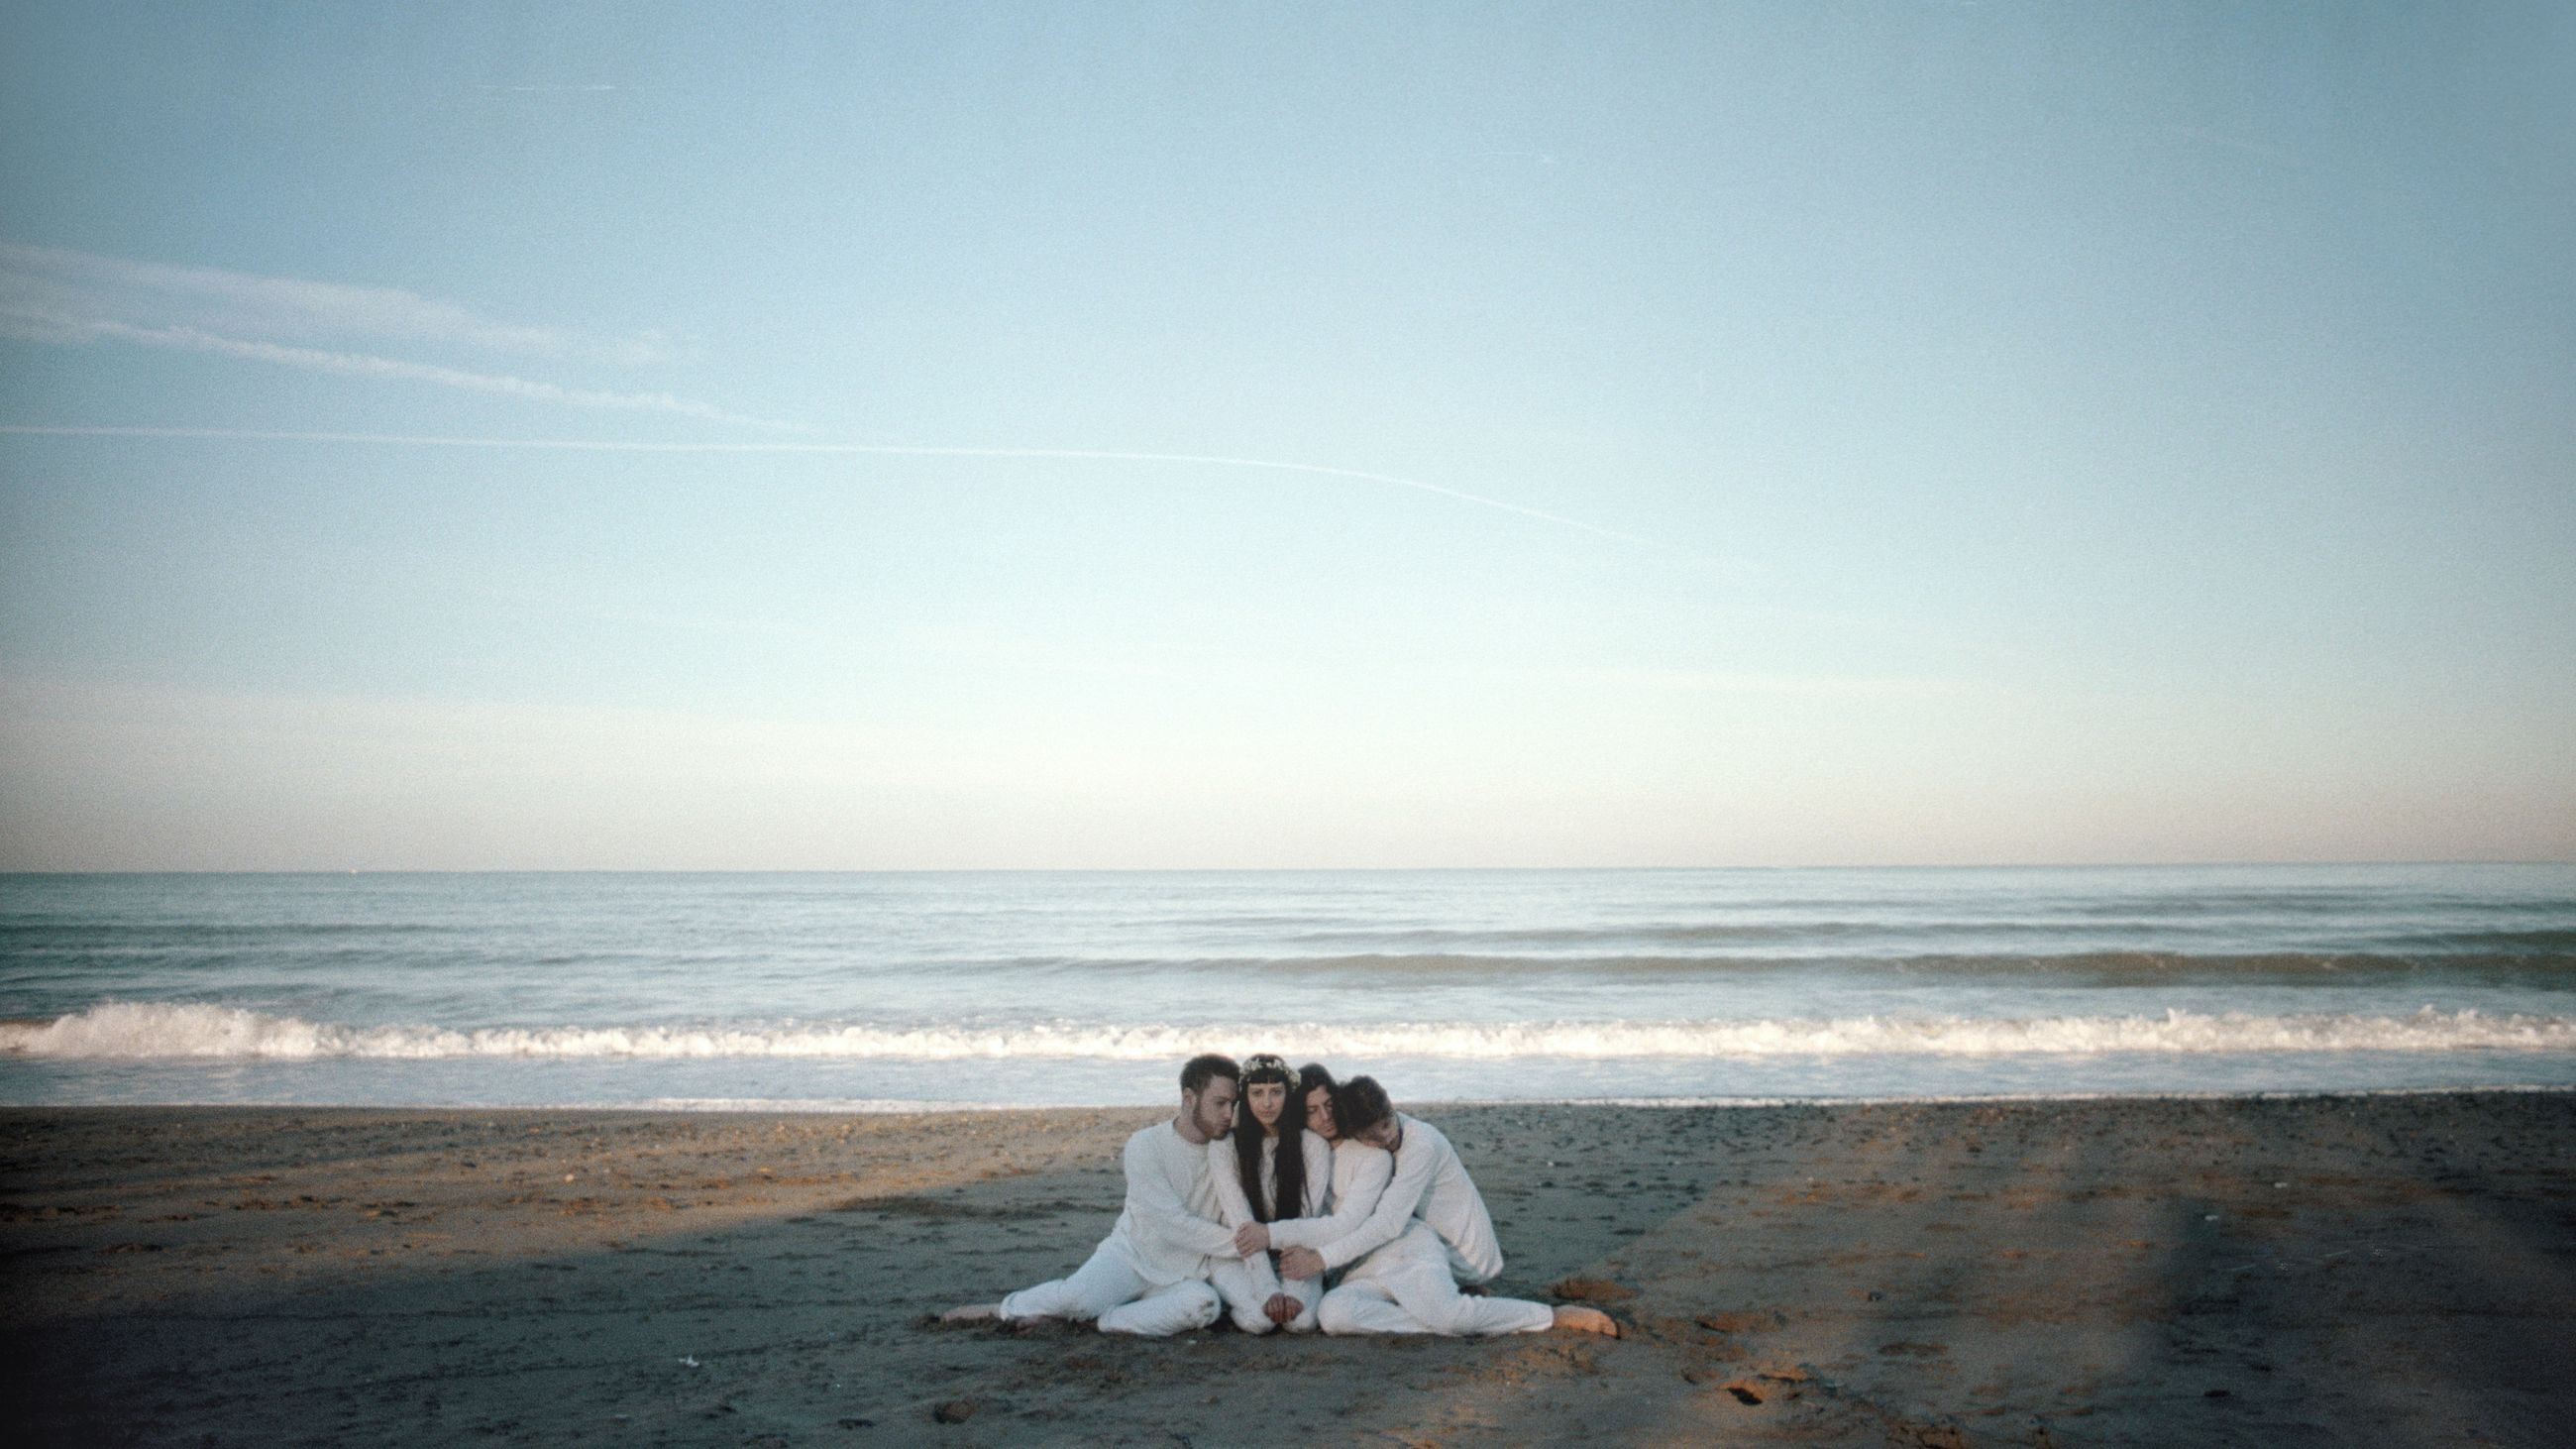 sea, water, horizon, beach, horizon over water, land, sky, beauty in nature, women, sitting, two people, scenics - nature, nature, togetherness, people, idyllic, tranquility, couple - relationship, relaxation